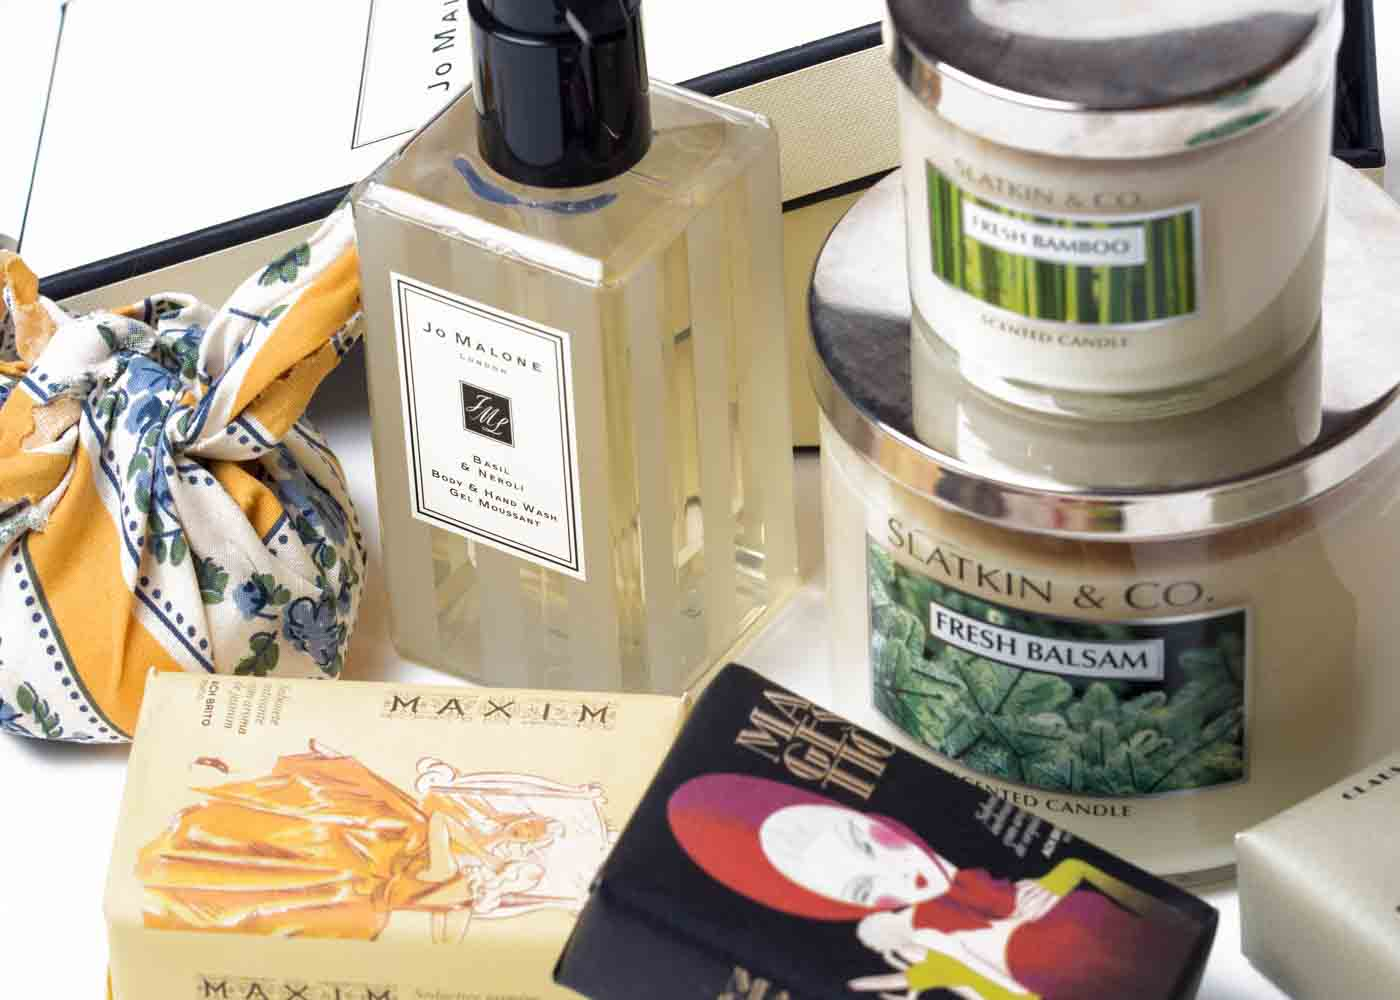 Scented gifts tend not to be among the most popular - most folks have strong opinions about fragrances.